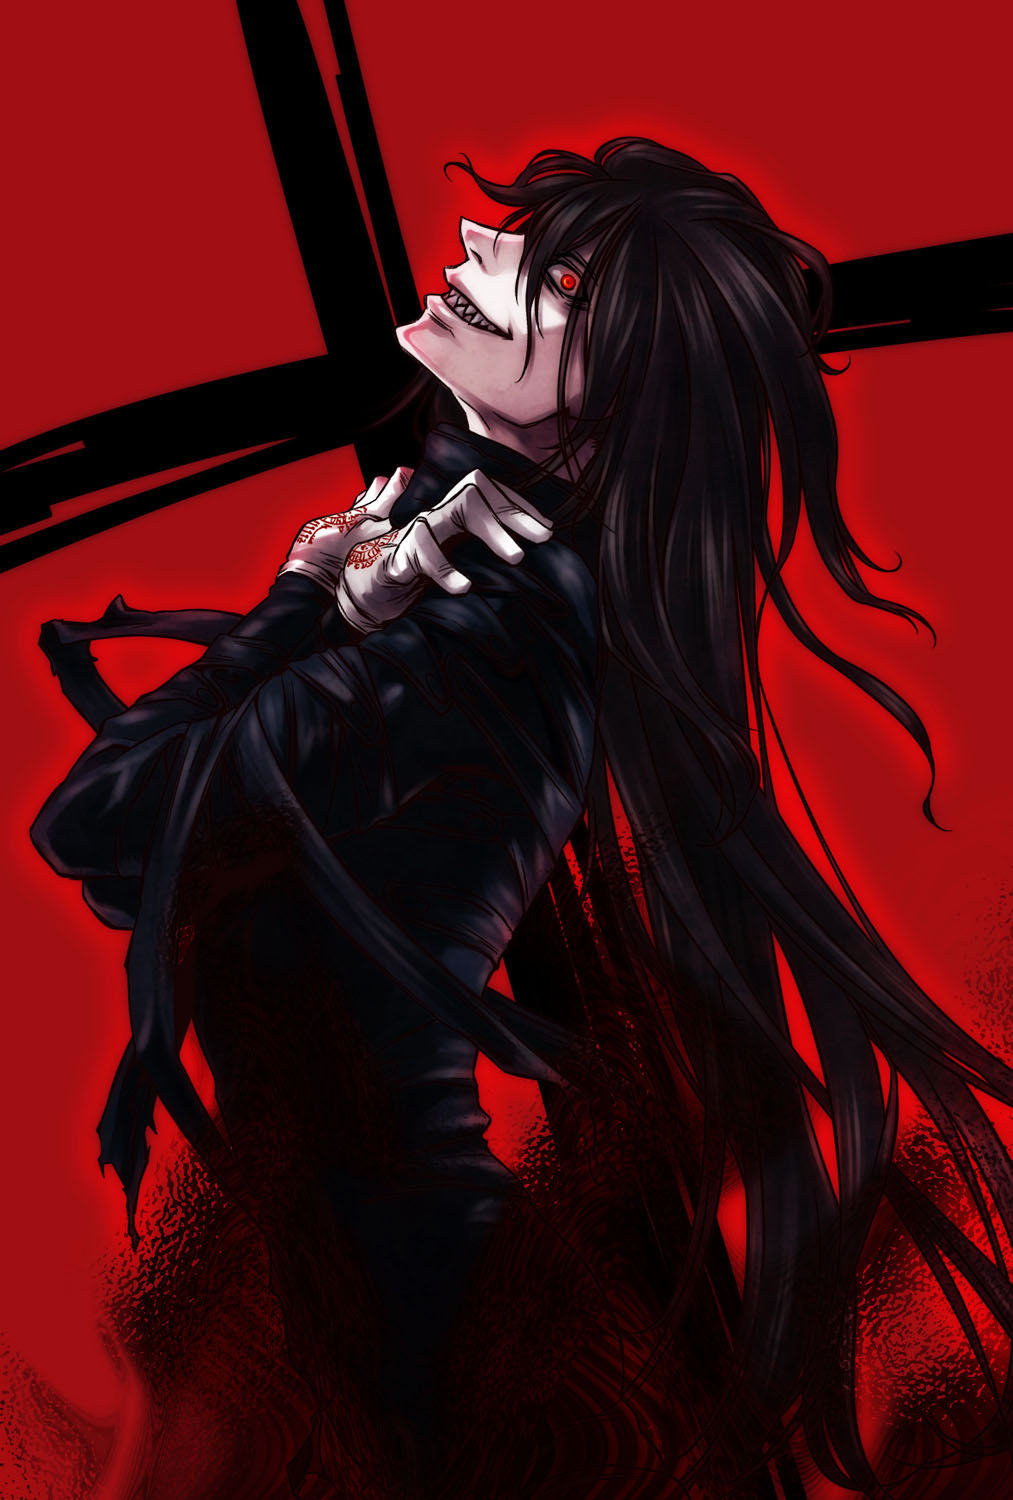 700 Wallpaper Alucard Android  Paling Baru